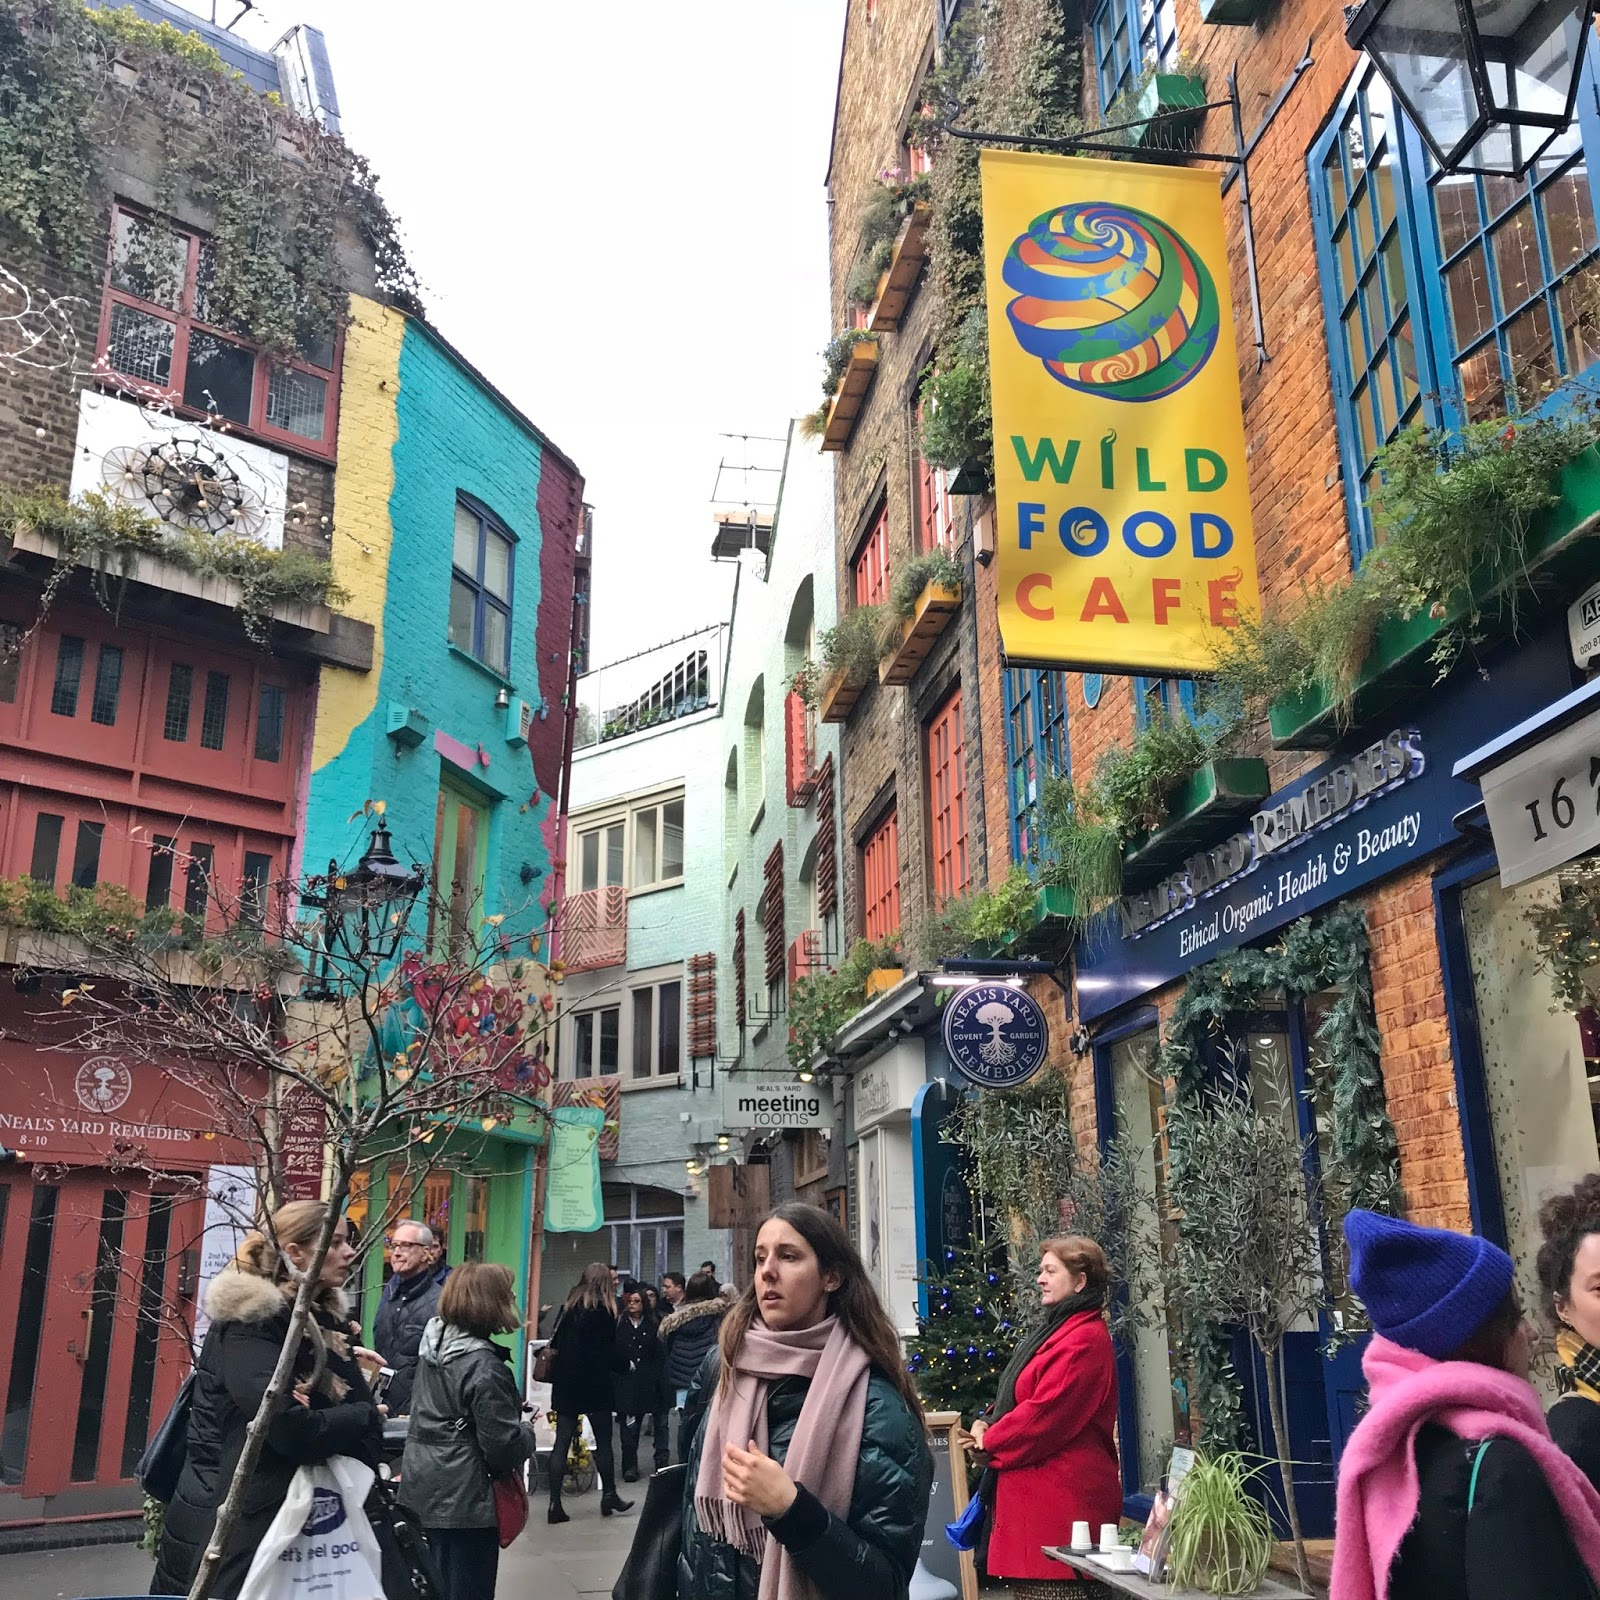 neal's yard street 2017 london